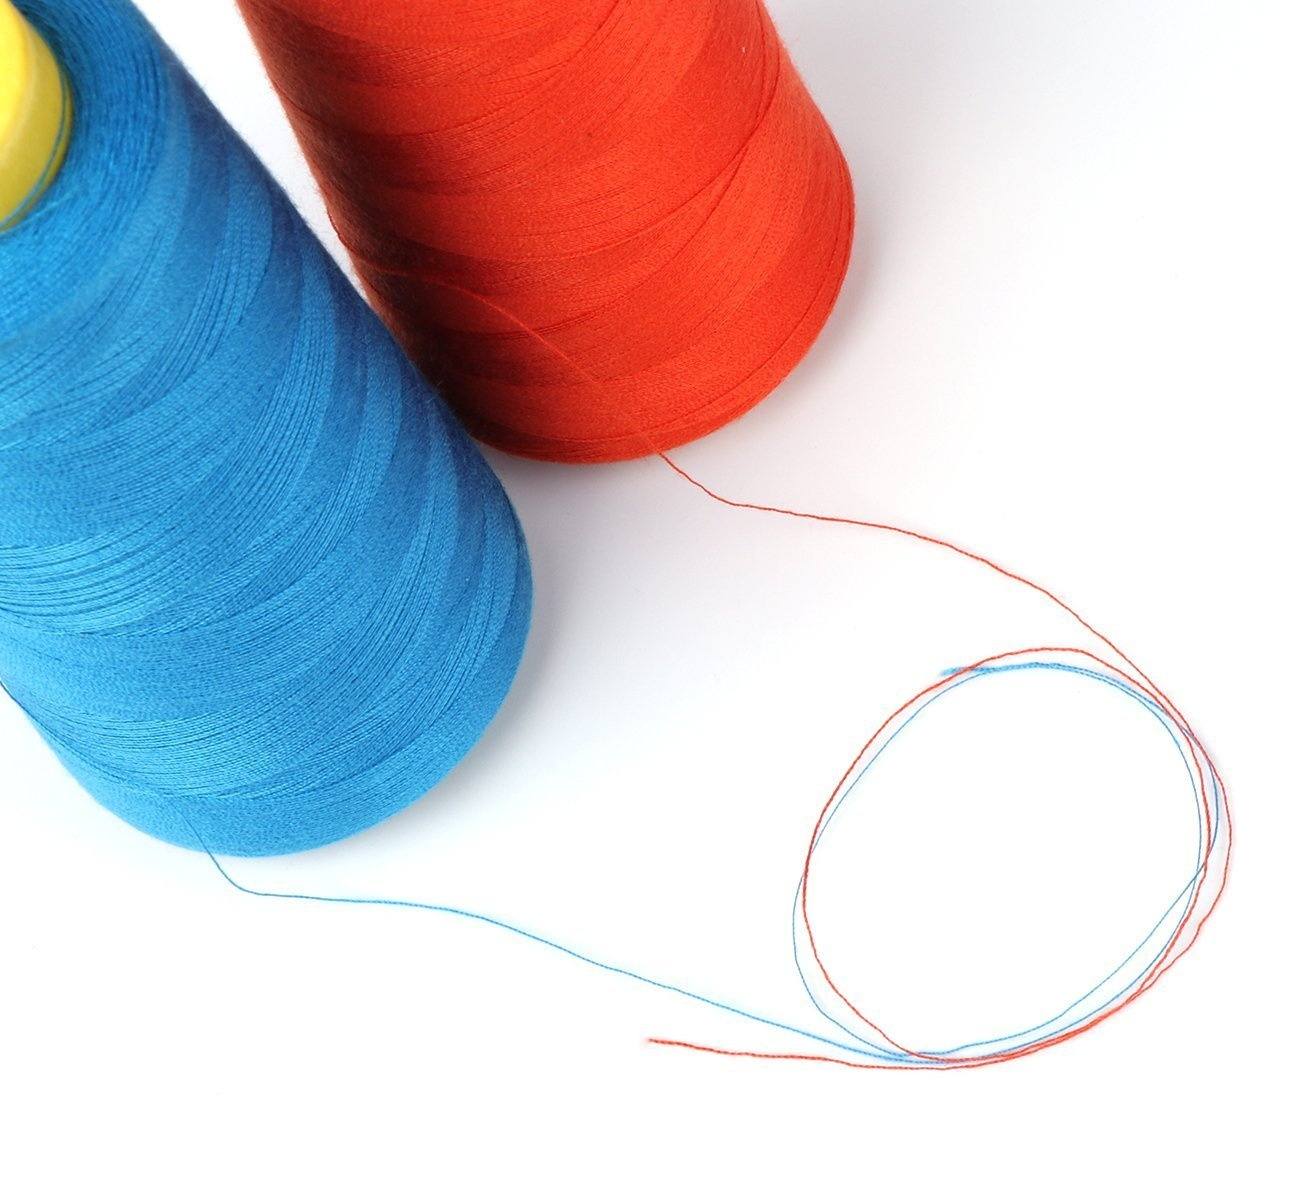 Sewing Thread 100/% Polyester Spools 5 Colors 3000 Yard Spools Overlock Cone for Serger Sewing Machine